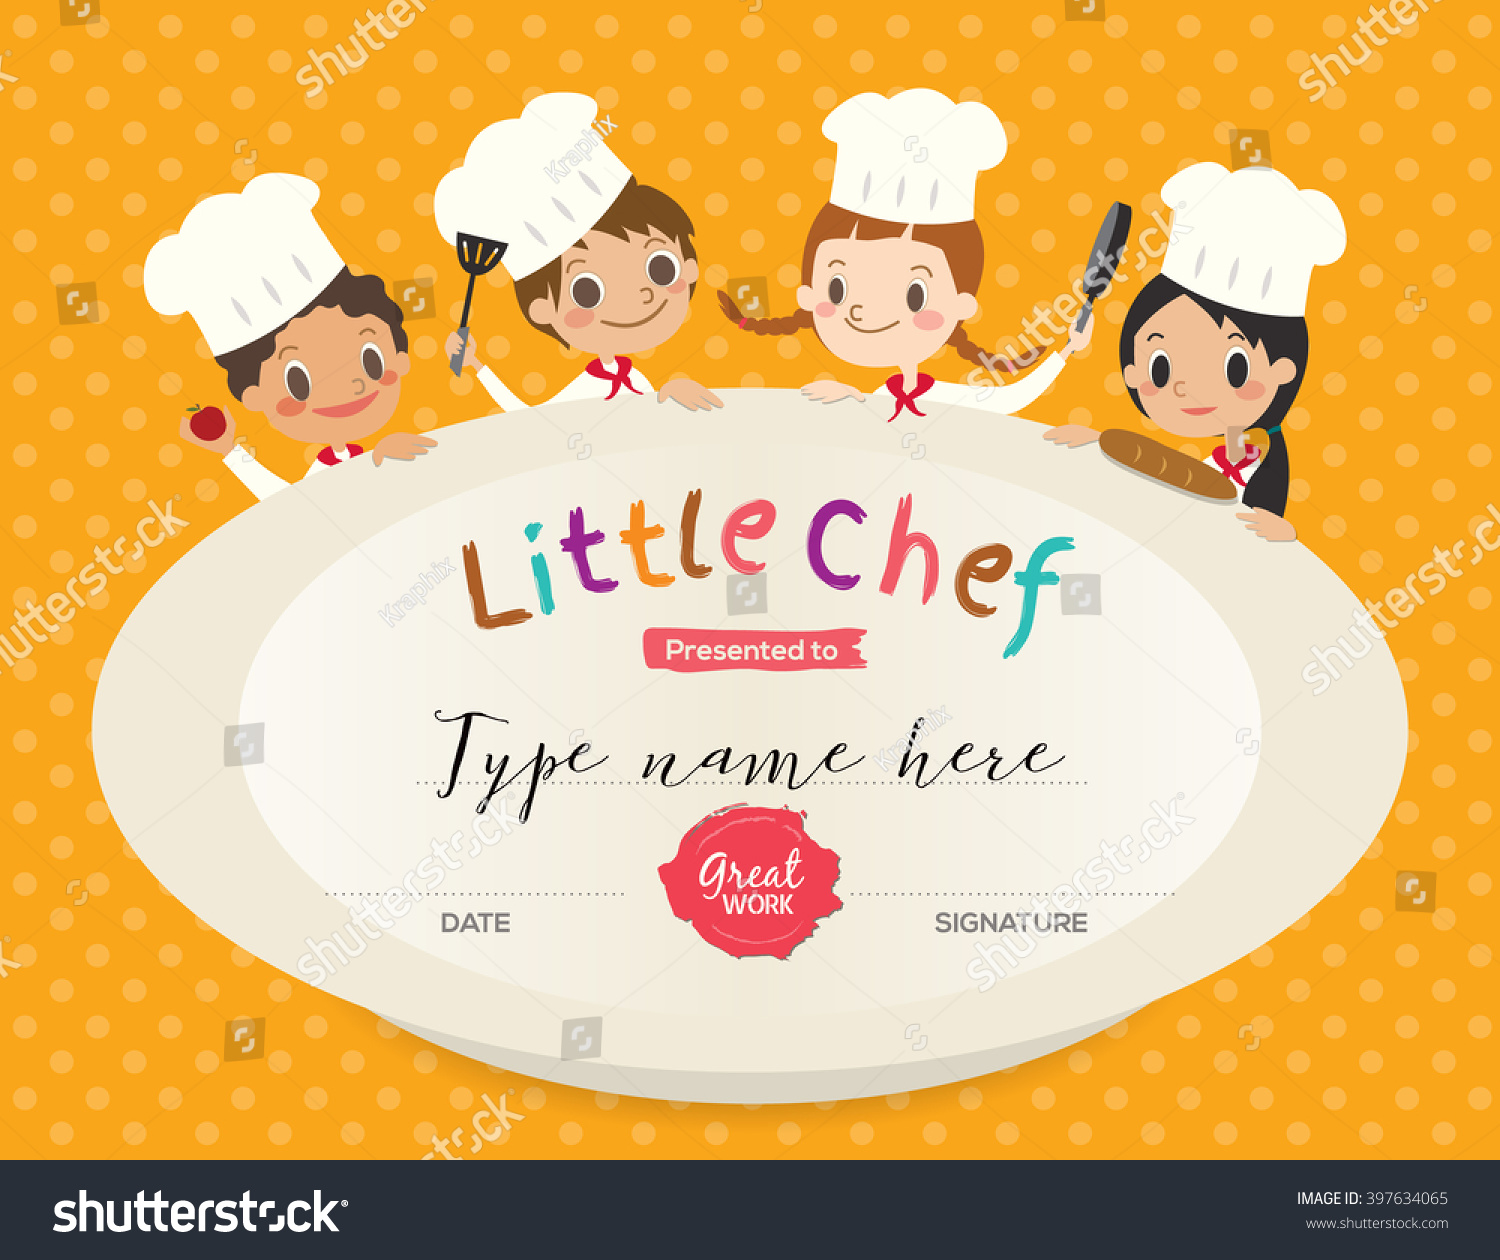 Kids cooking class certificate design template stock vector kids cooking class certificate design template with little chef cartoon illustration yelopaper Images